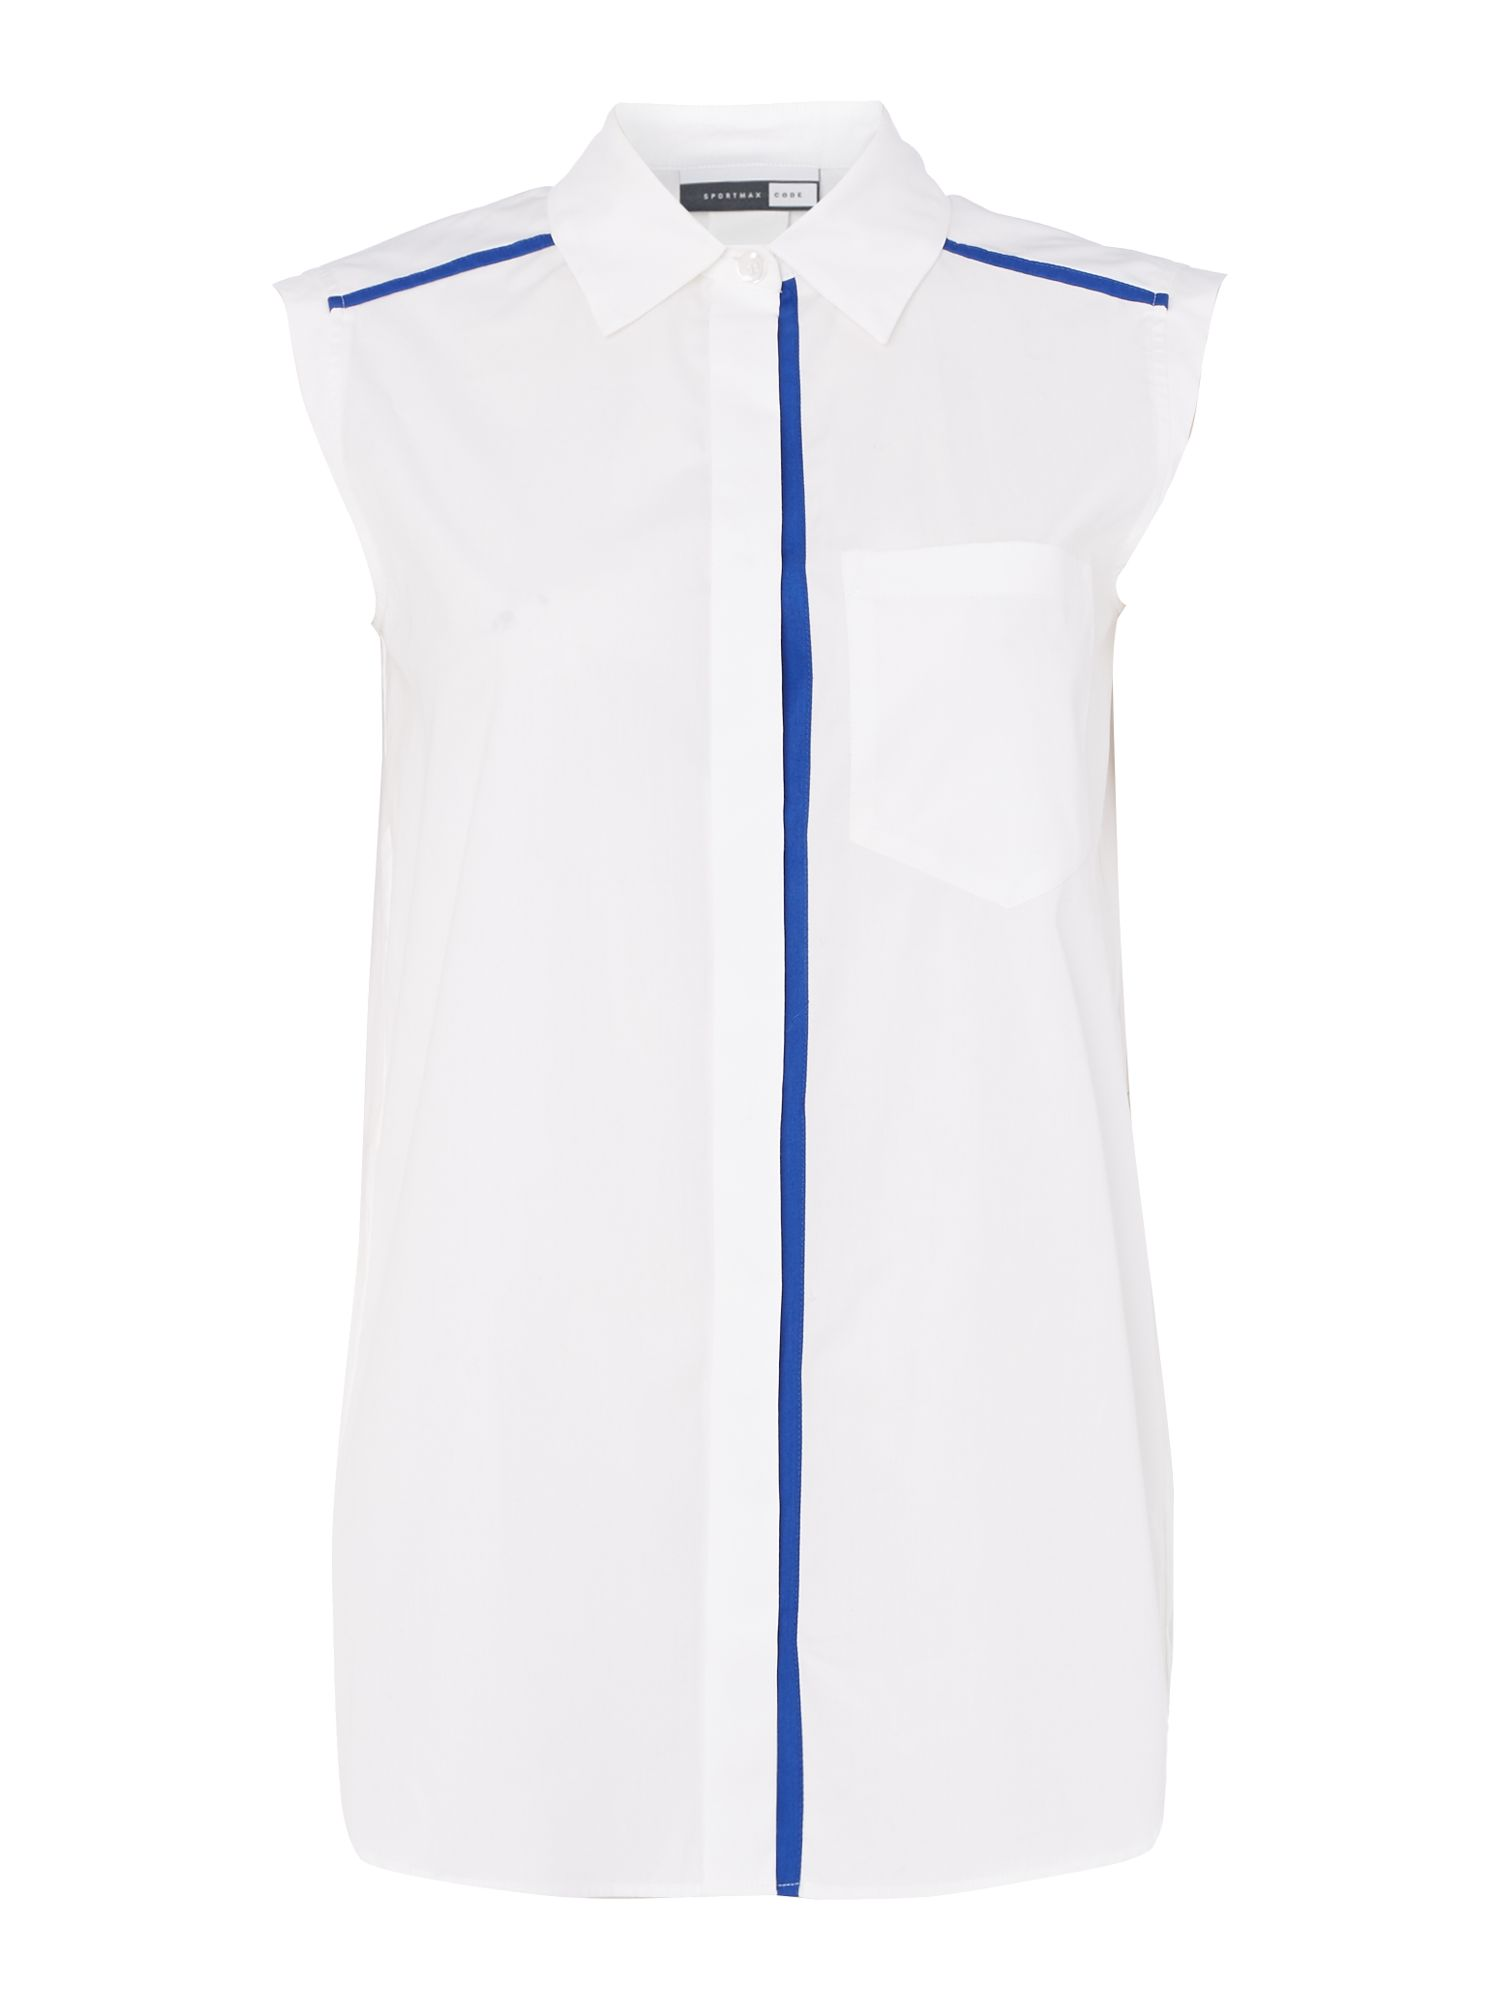 Sportmax Code MIRTO sleeveless front pocket shirt, Optical White